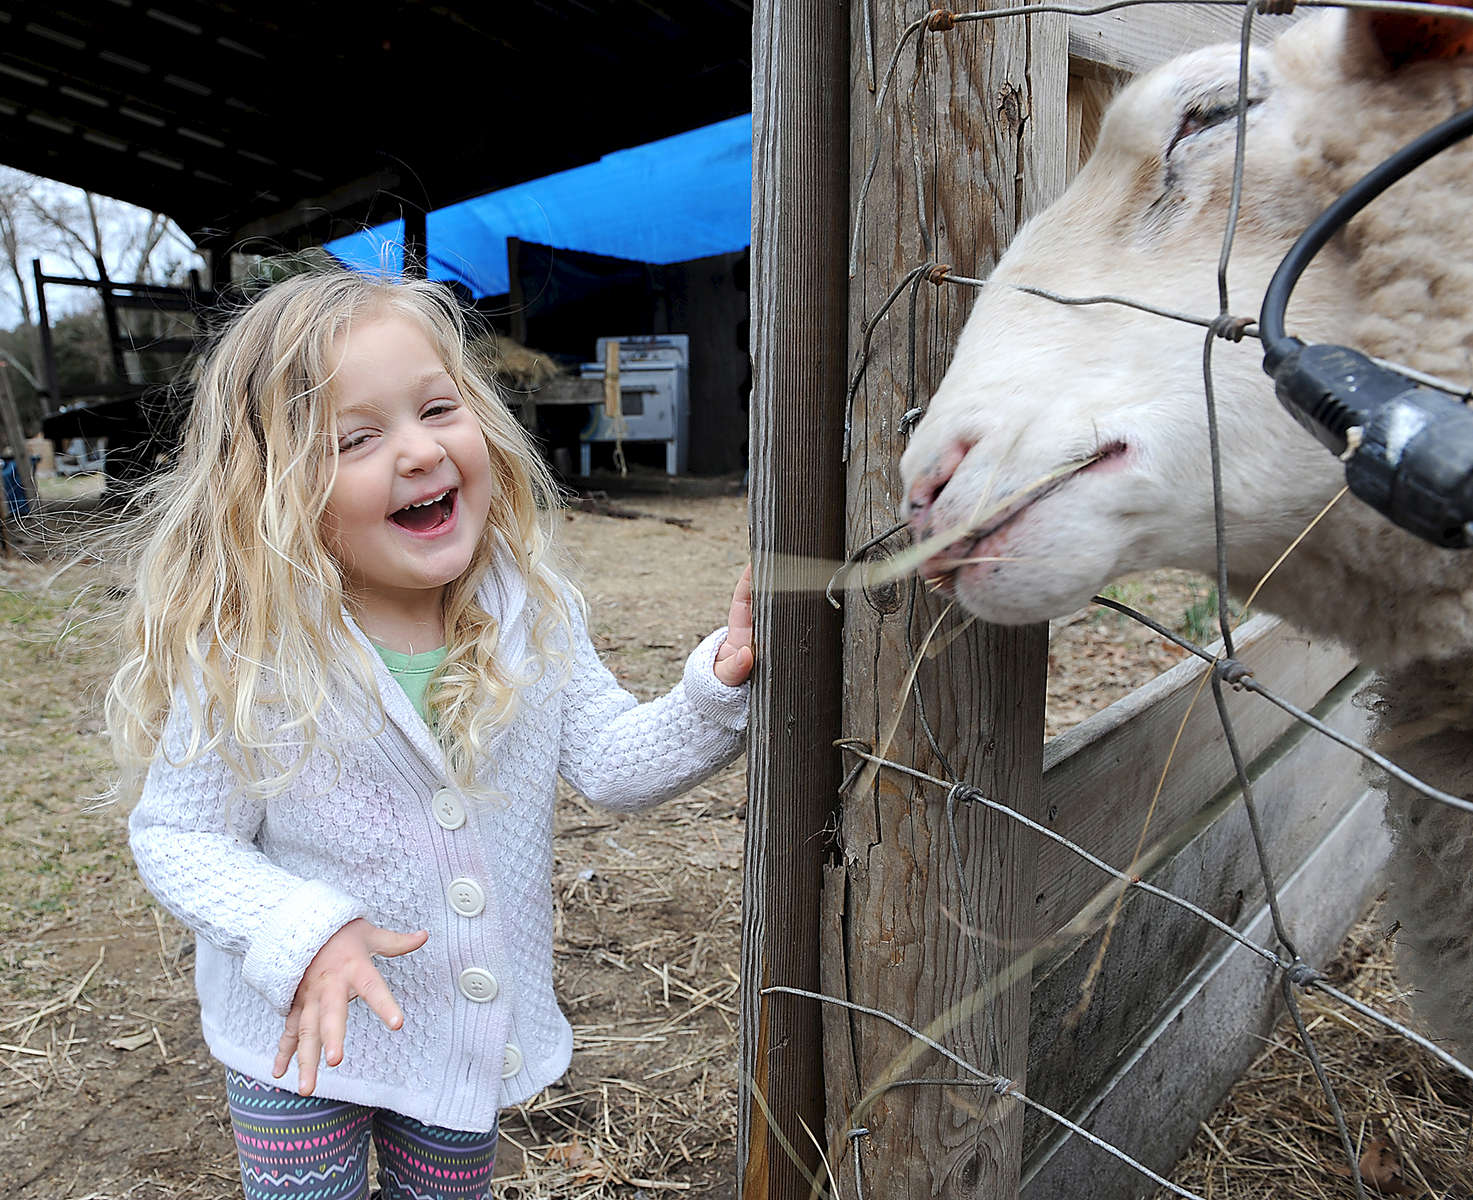 2/29/16--FRAMINGHAM--  Abby Hanson, 3, the sixth generation of Hansons at Hanson Farm, feeds hay to a sheep. {quote}One of the great reasons to try and save as much open space as we can is so when Abby grows up there'll be something for her generation as well,{quote} said Tom Hanson, chairman of  Framingham Agricultural Advisory Group.Daily News and Wicked Local Staff Photo/Art Illman